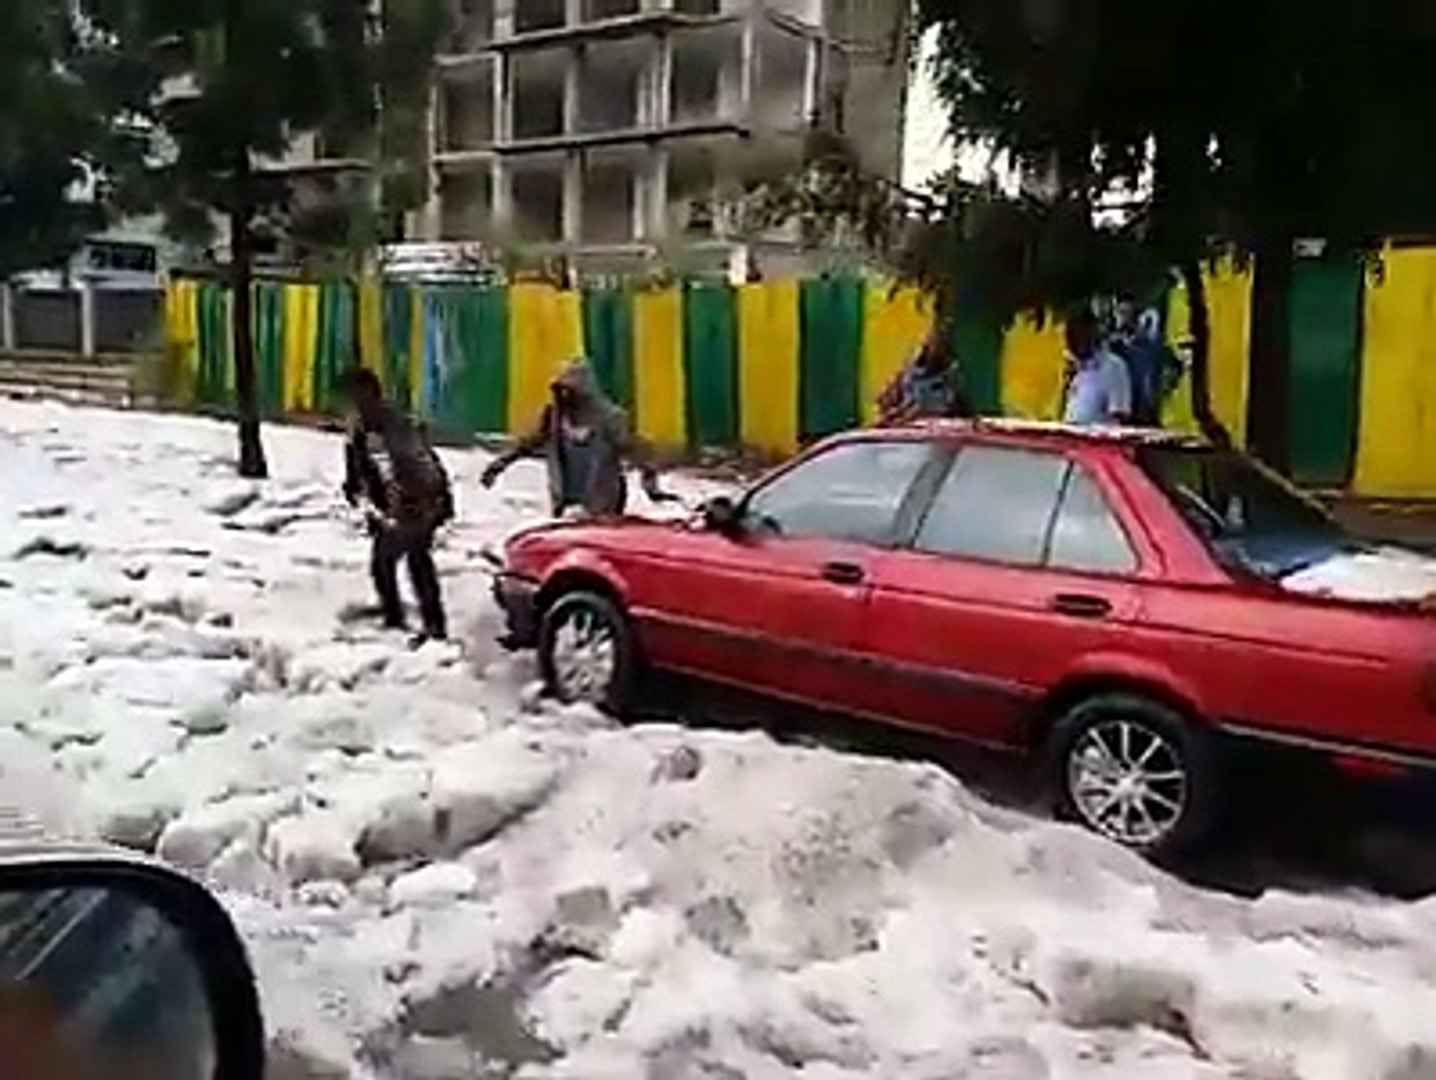 Snow in Addis Ababa, Ethiopia